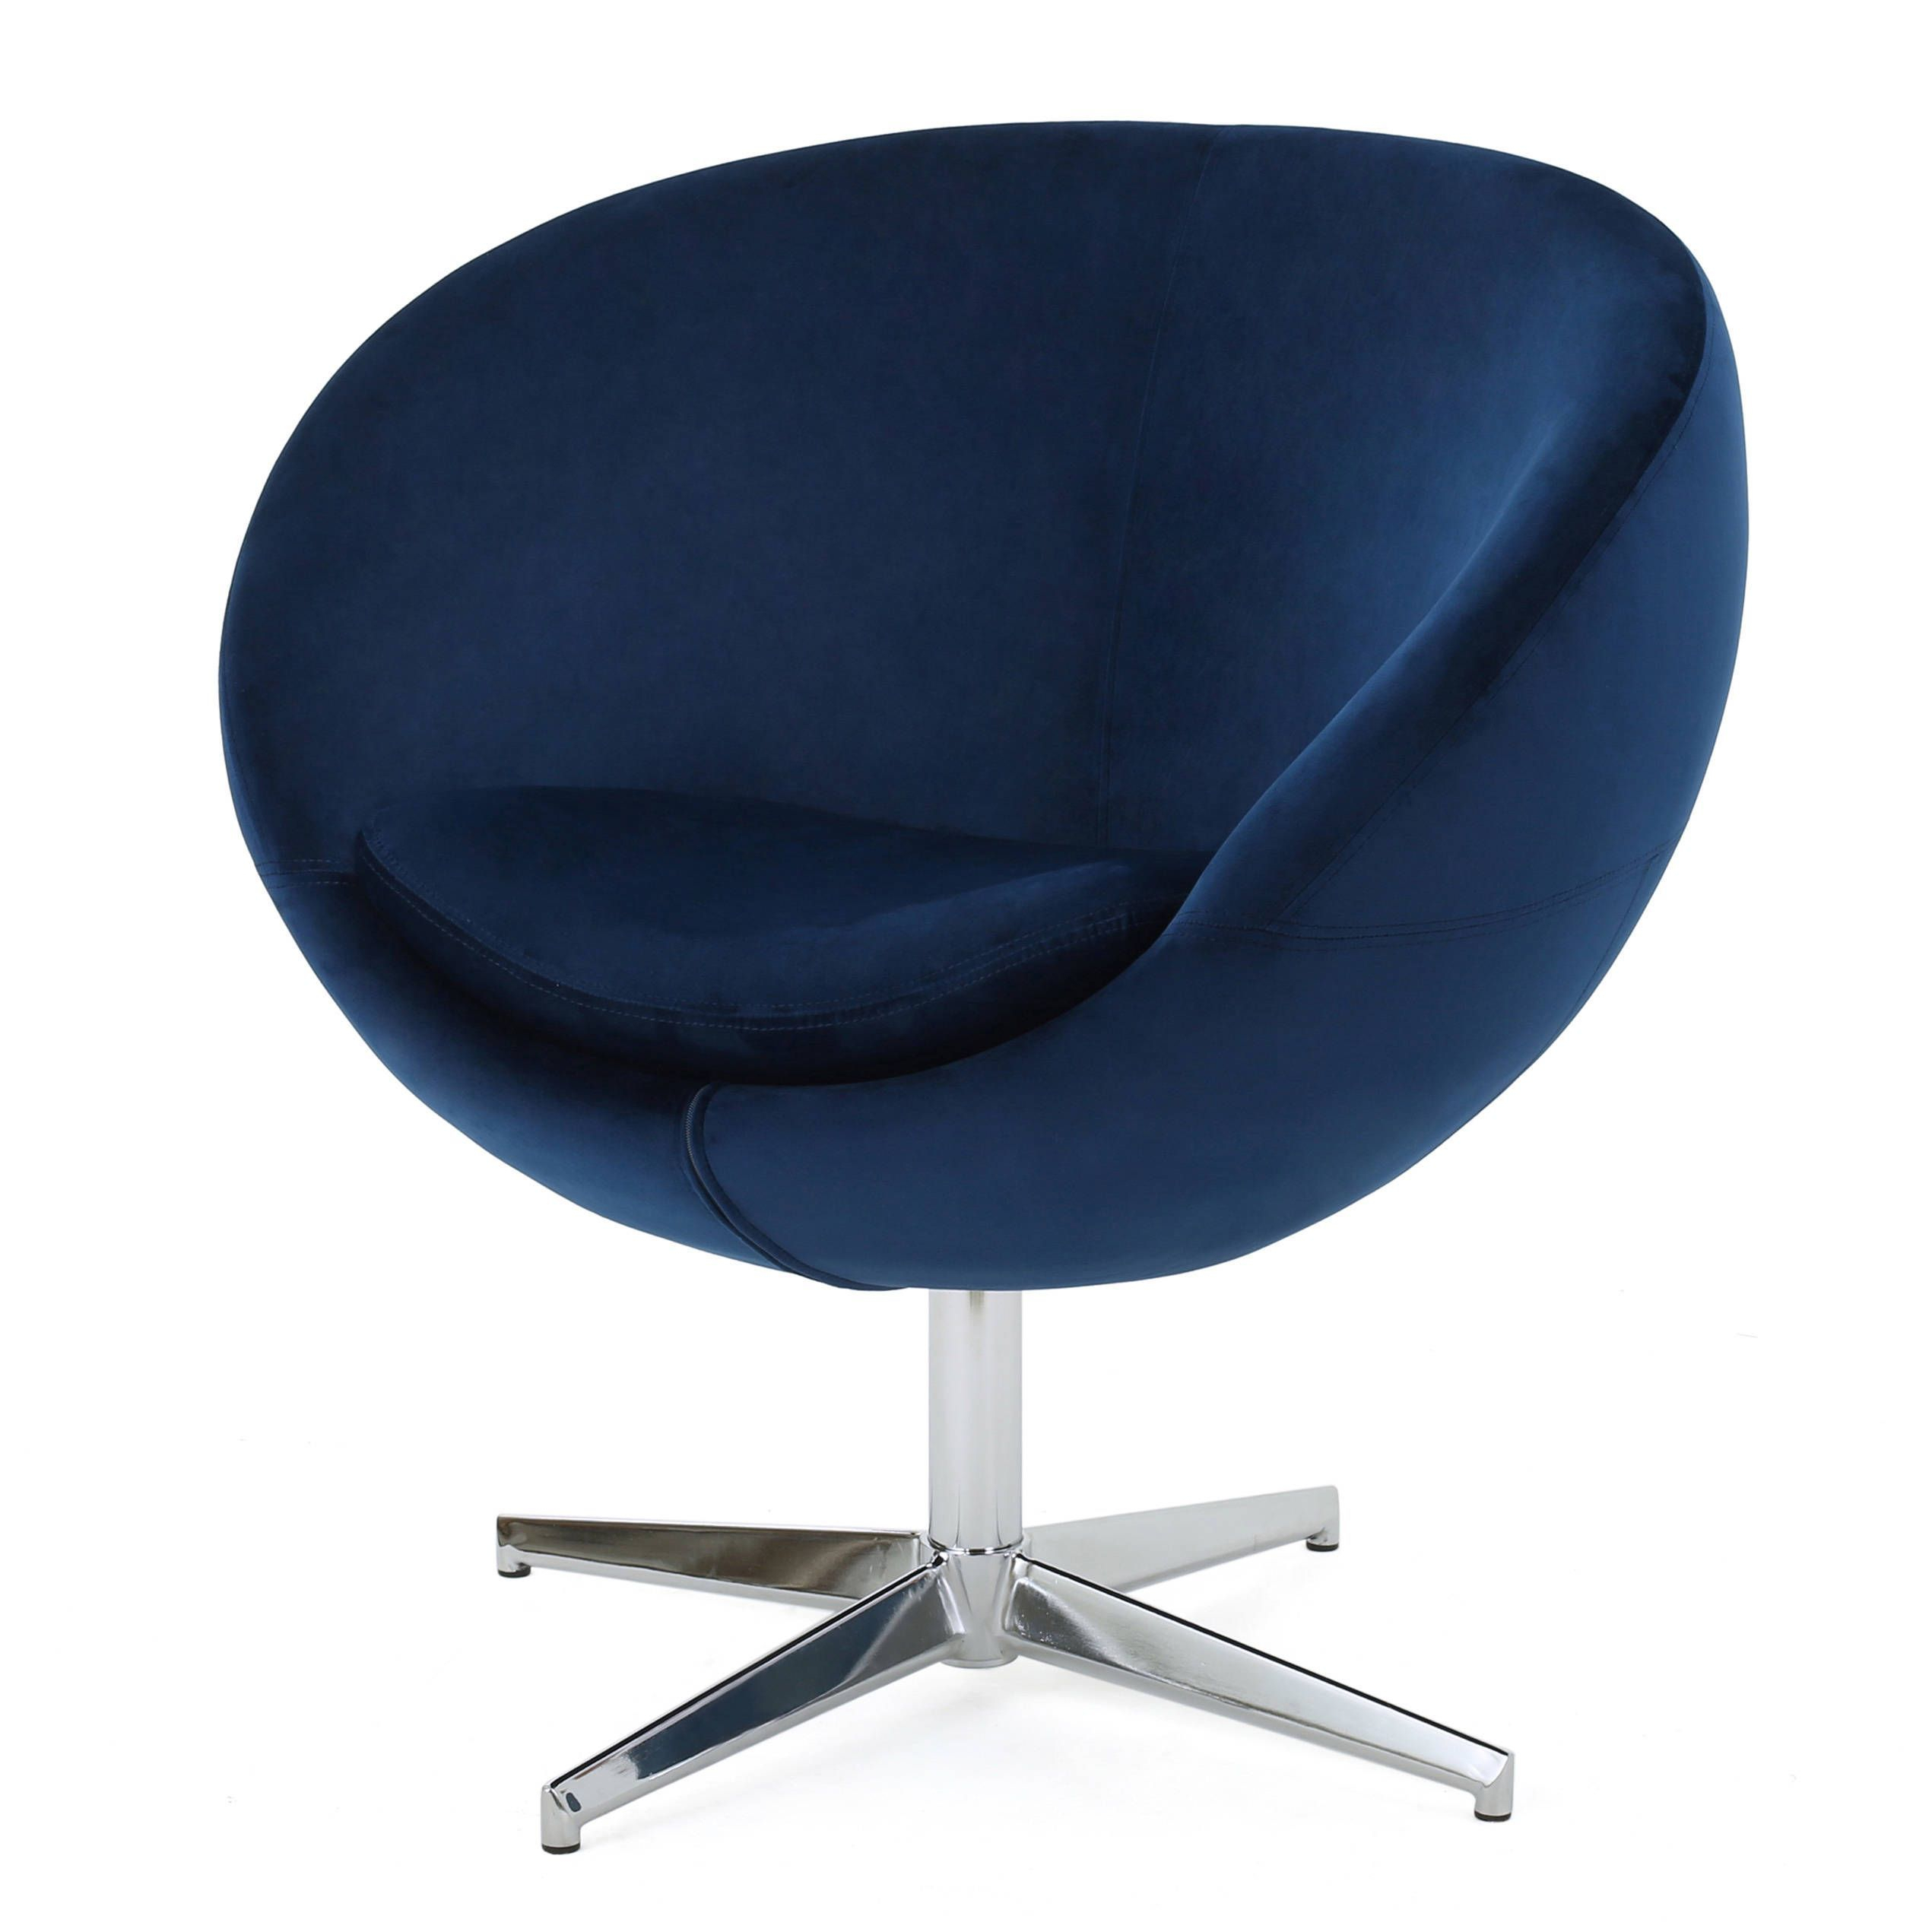 Isla Velvet Fabric Roundback Modern Chairchristopher Knight Home Throughout Chill Swivel Chairs With Metal Base (Image 14 of 20)